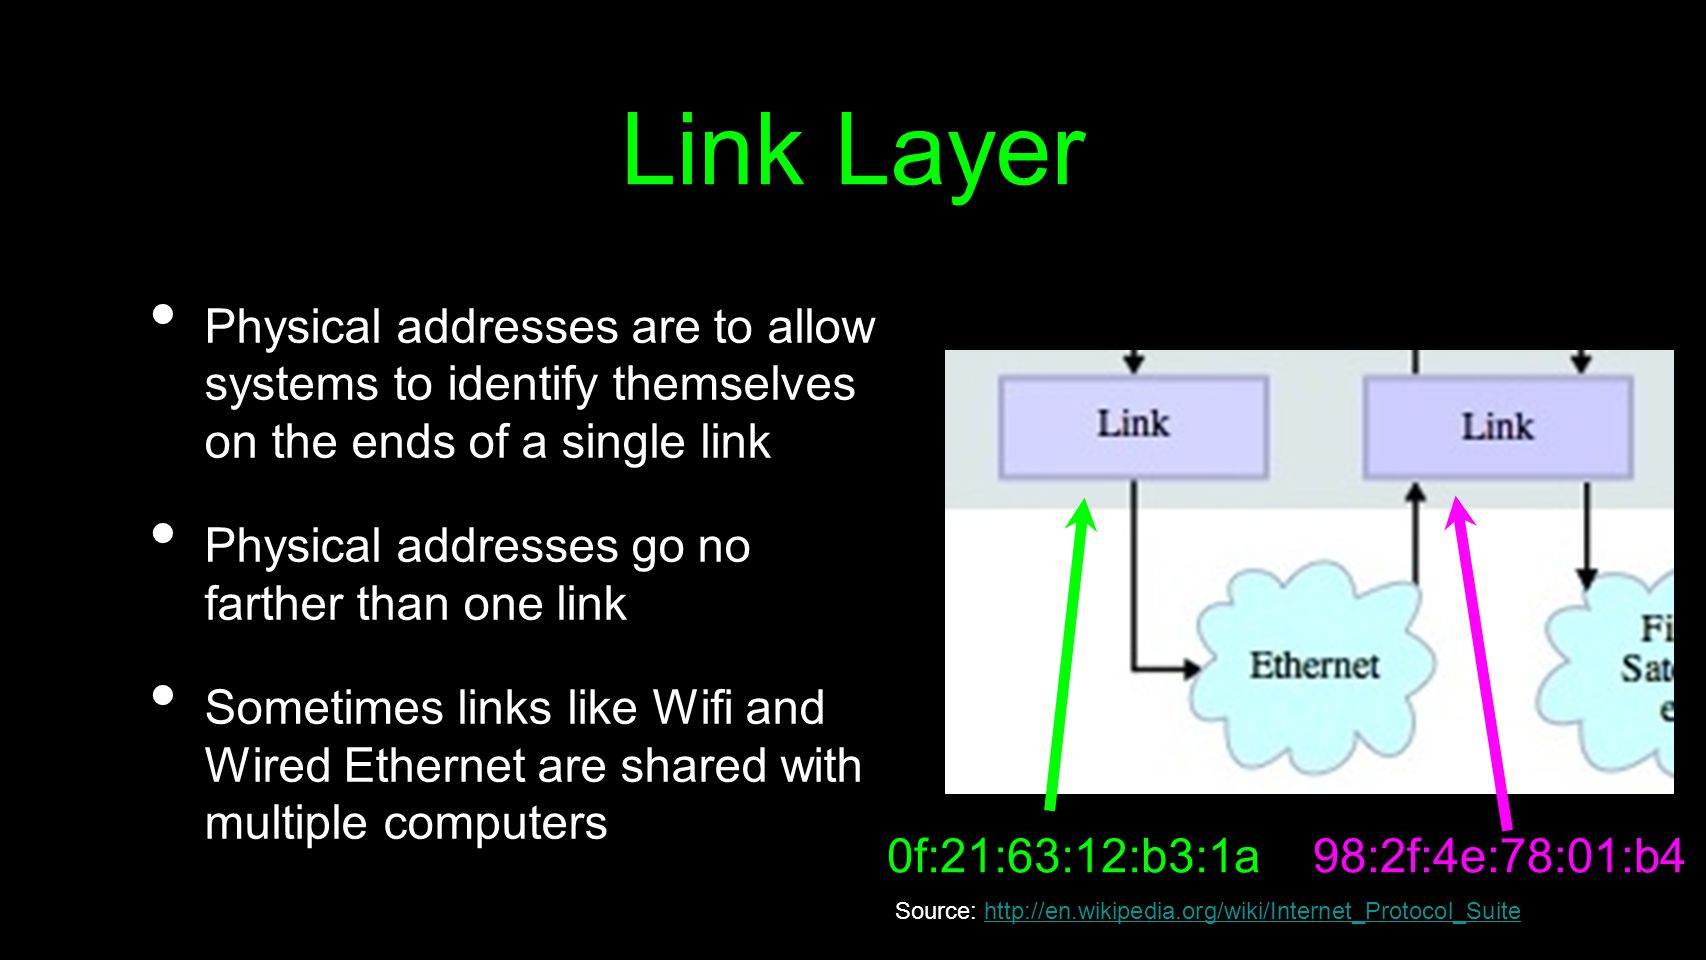 Source: http://en.wikipedia.org/wiki/Internet_Protocol_Suite